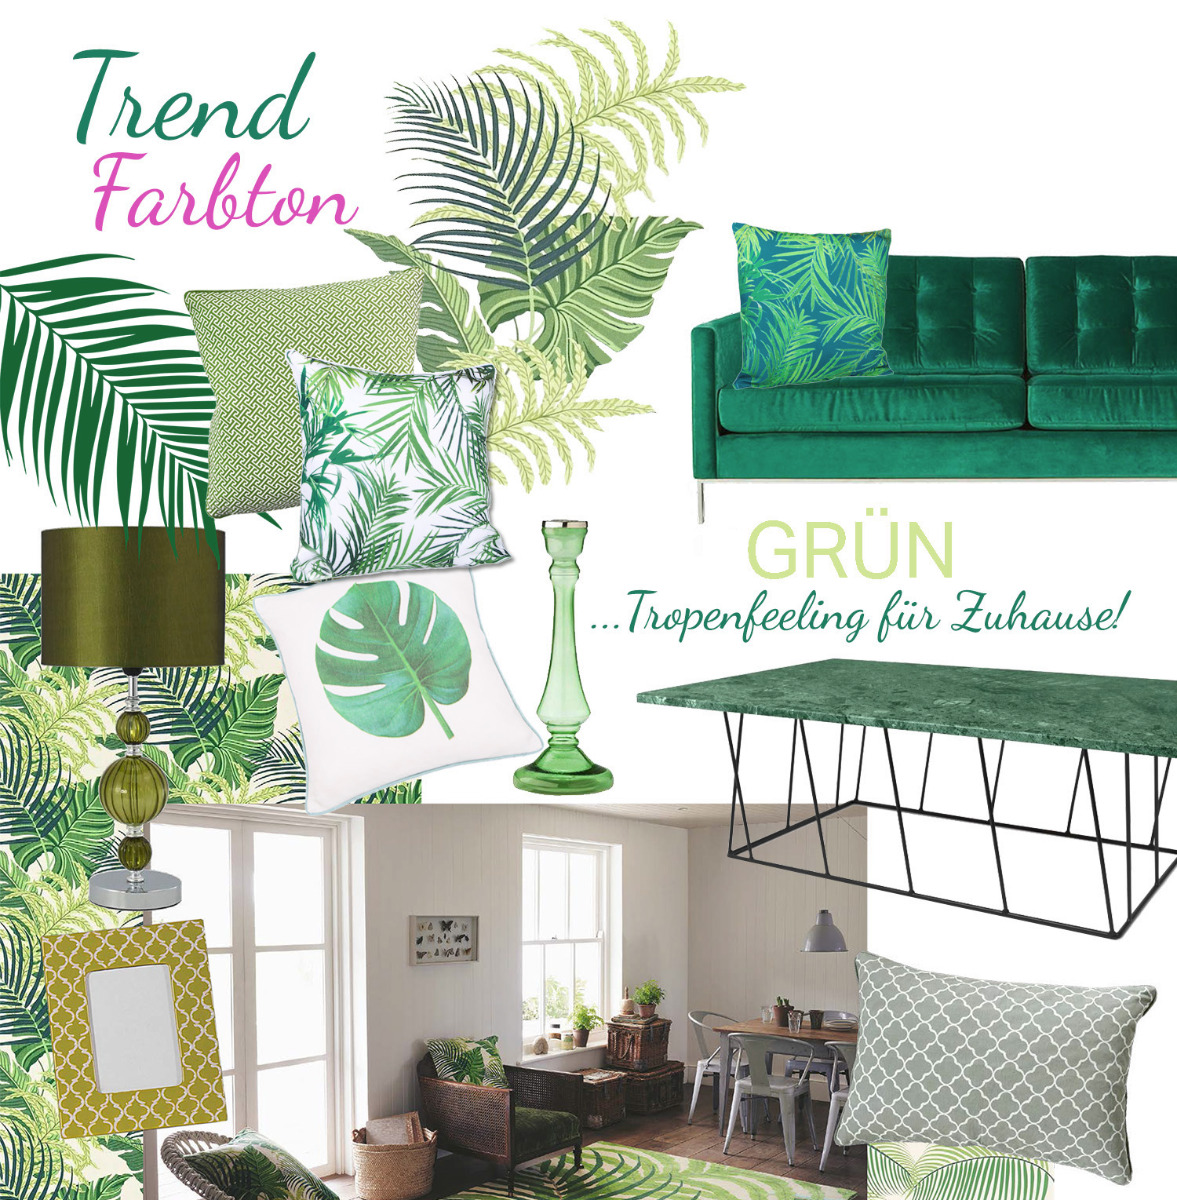 farbtrend gr n trend collections. Black Bedroom Furniture Sets. Home Design Ideas